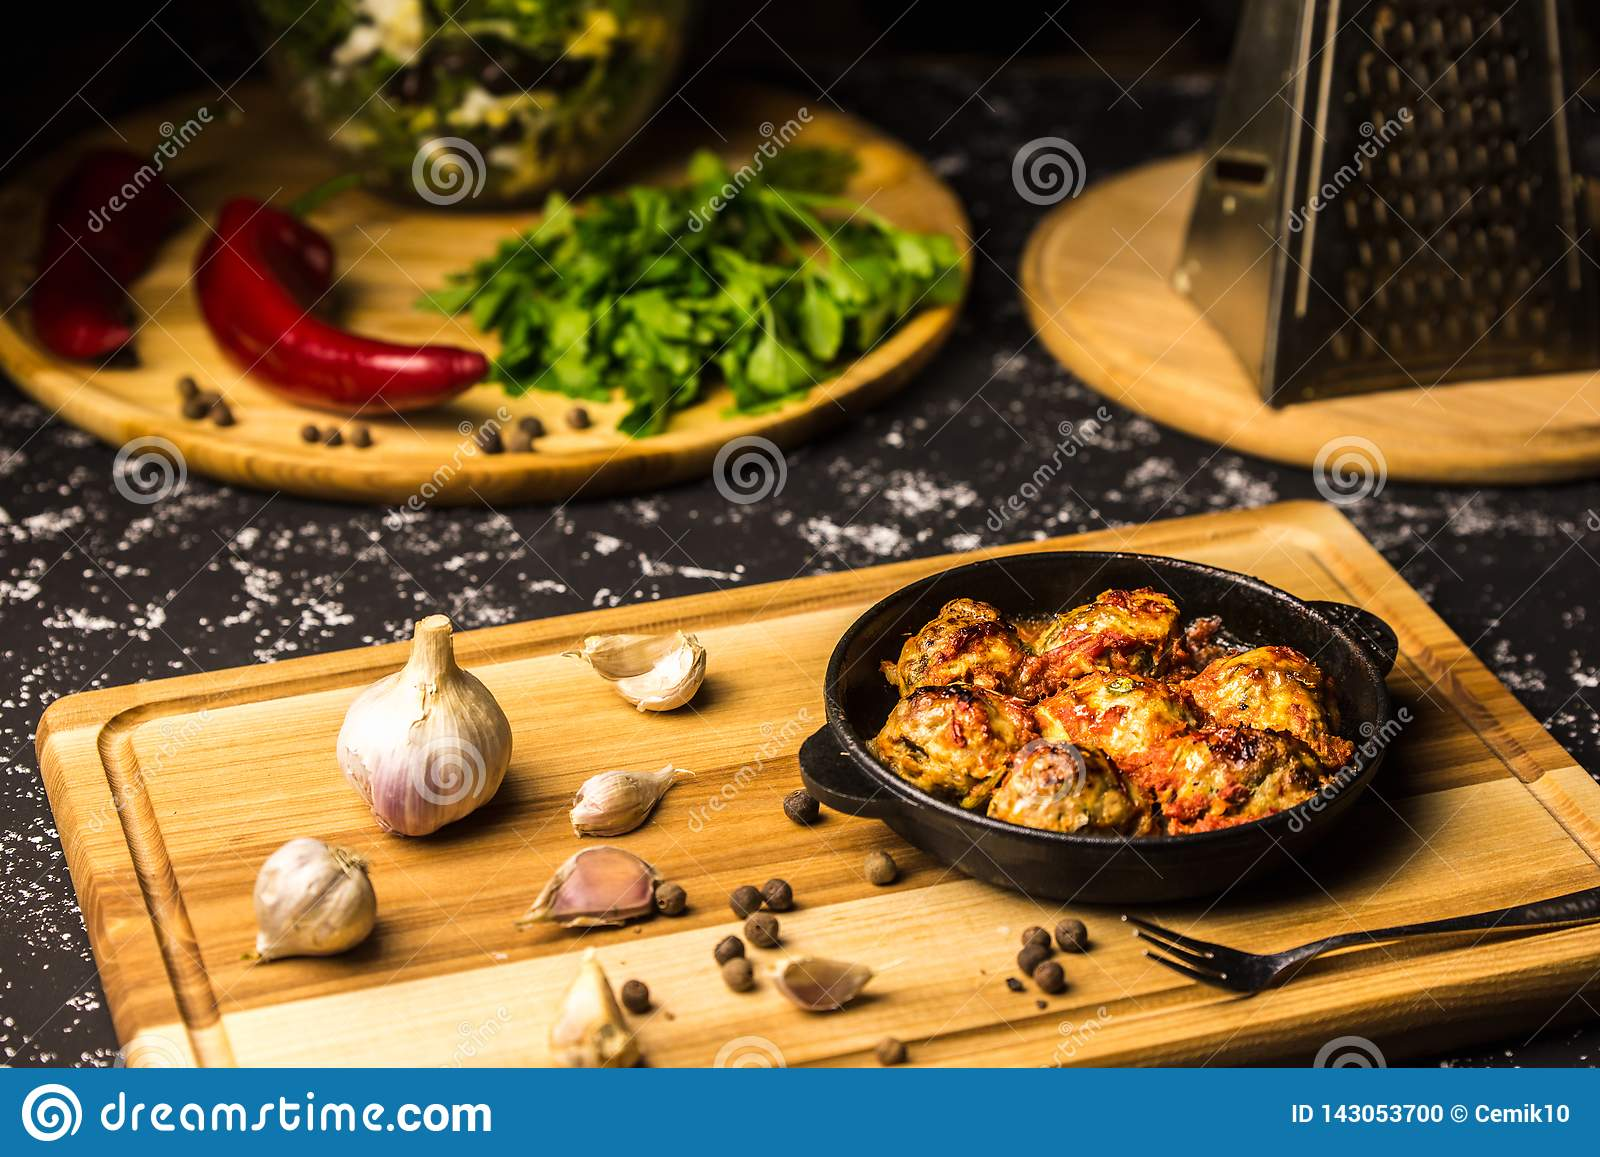 Meatballs in an iron pan on a wooden board with garlic and peppercorns